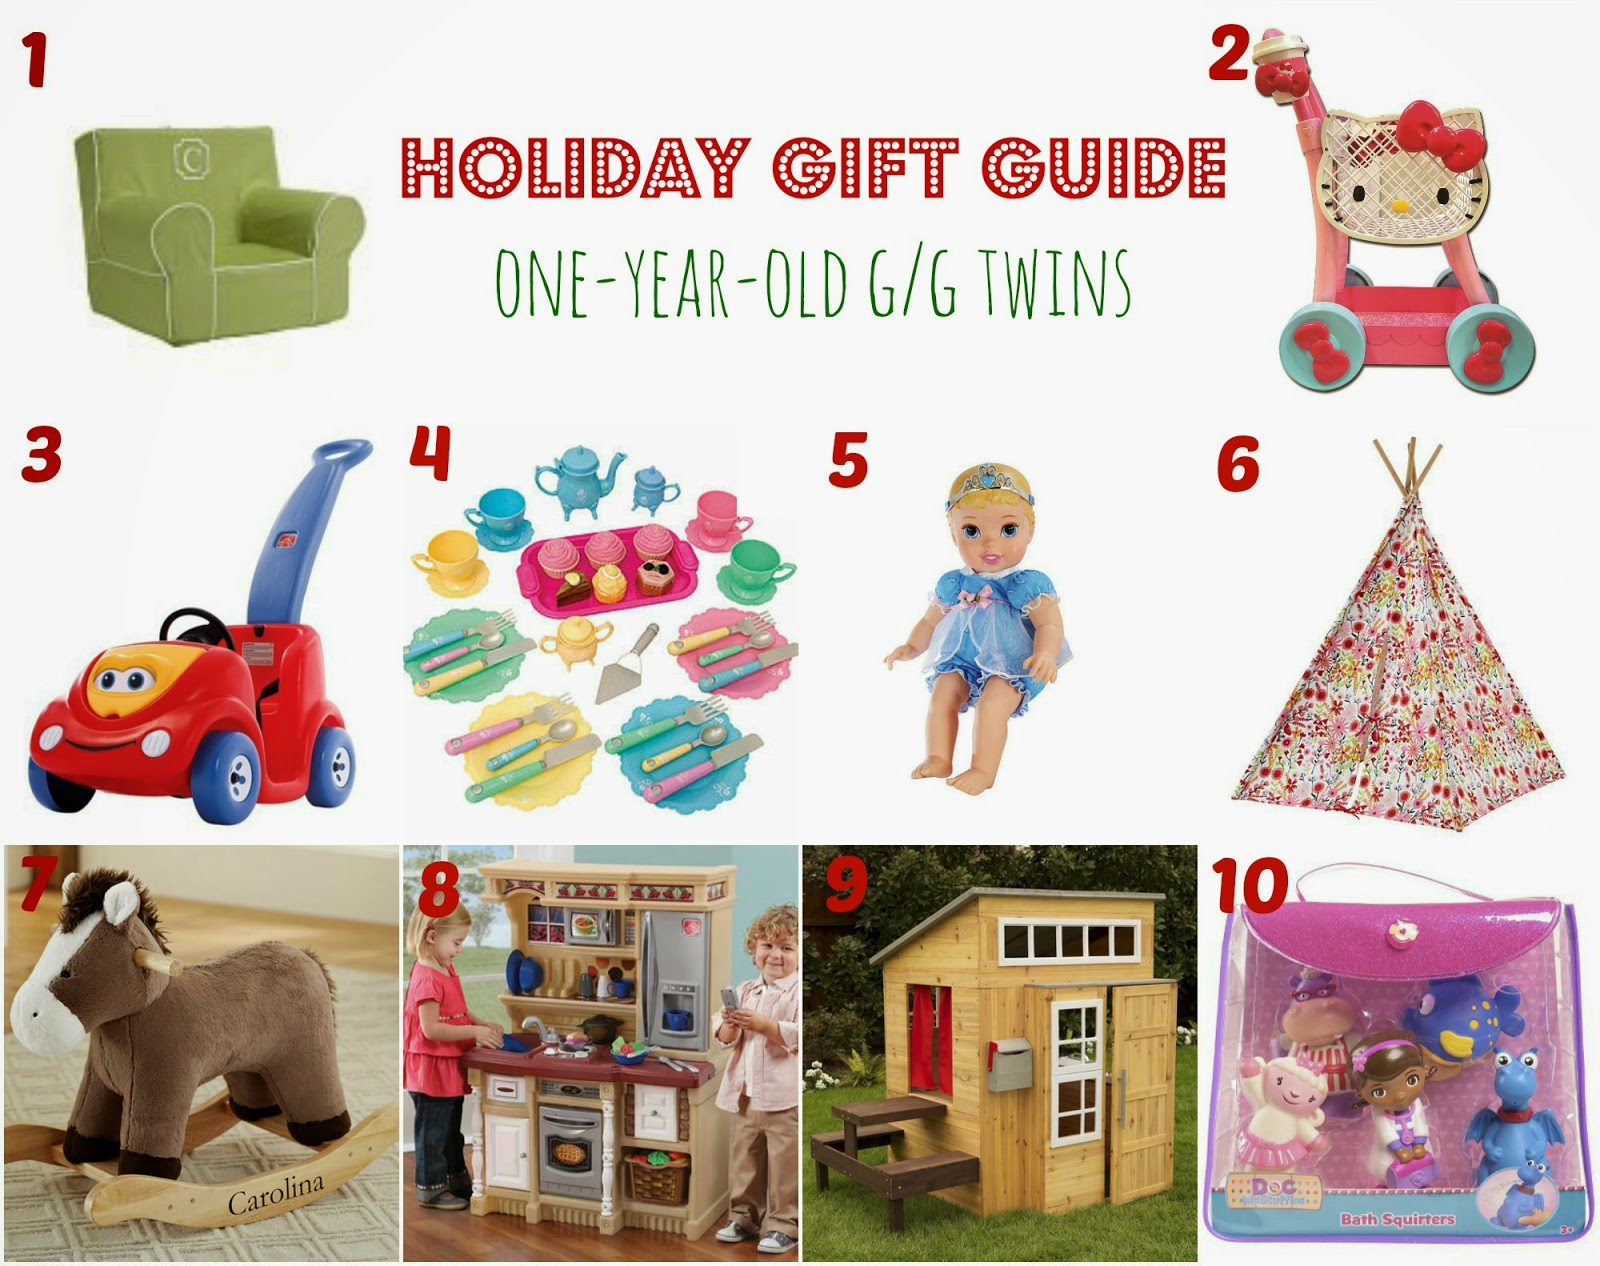 Twin Talk Blog: Holiday Gift Guide: one-year-old twins